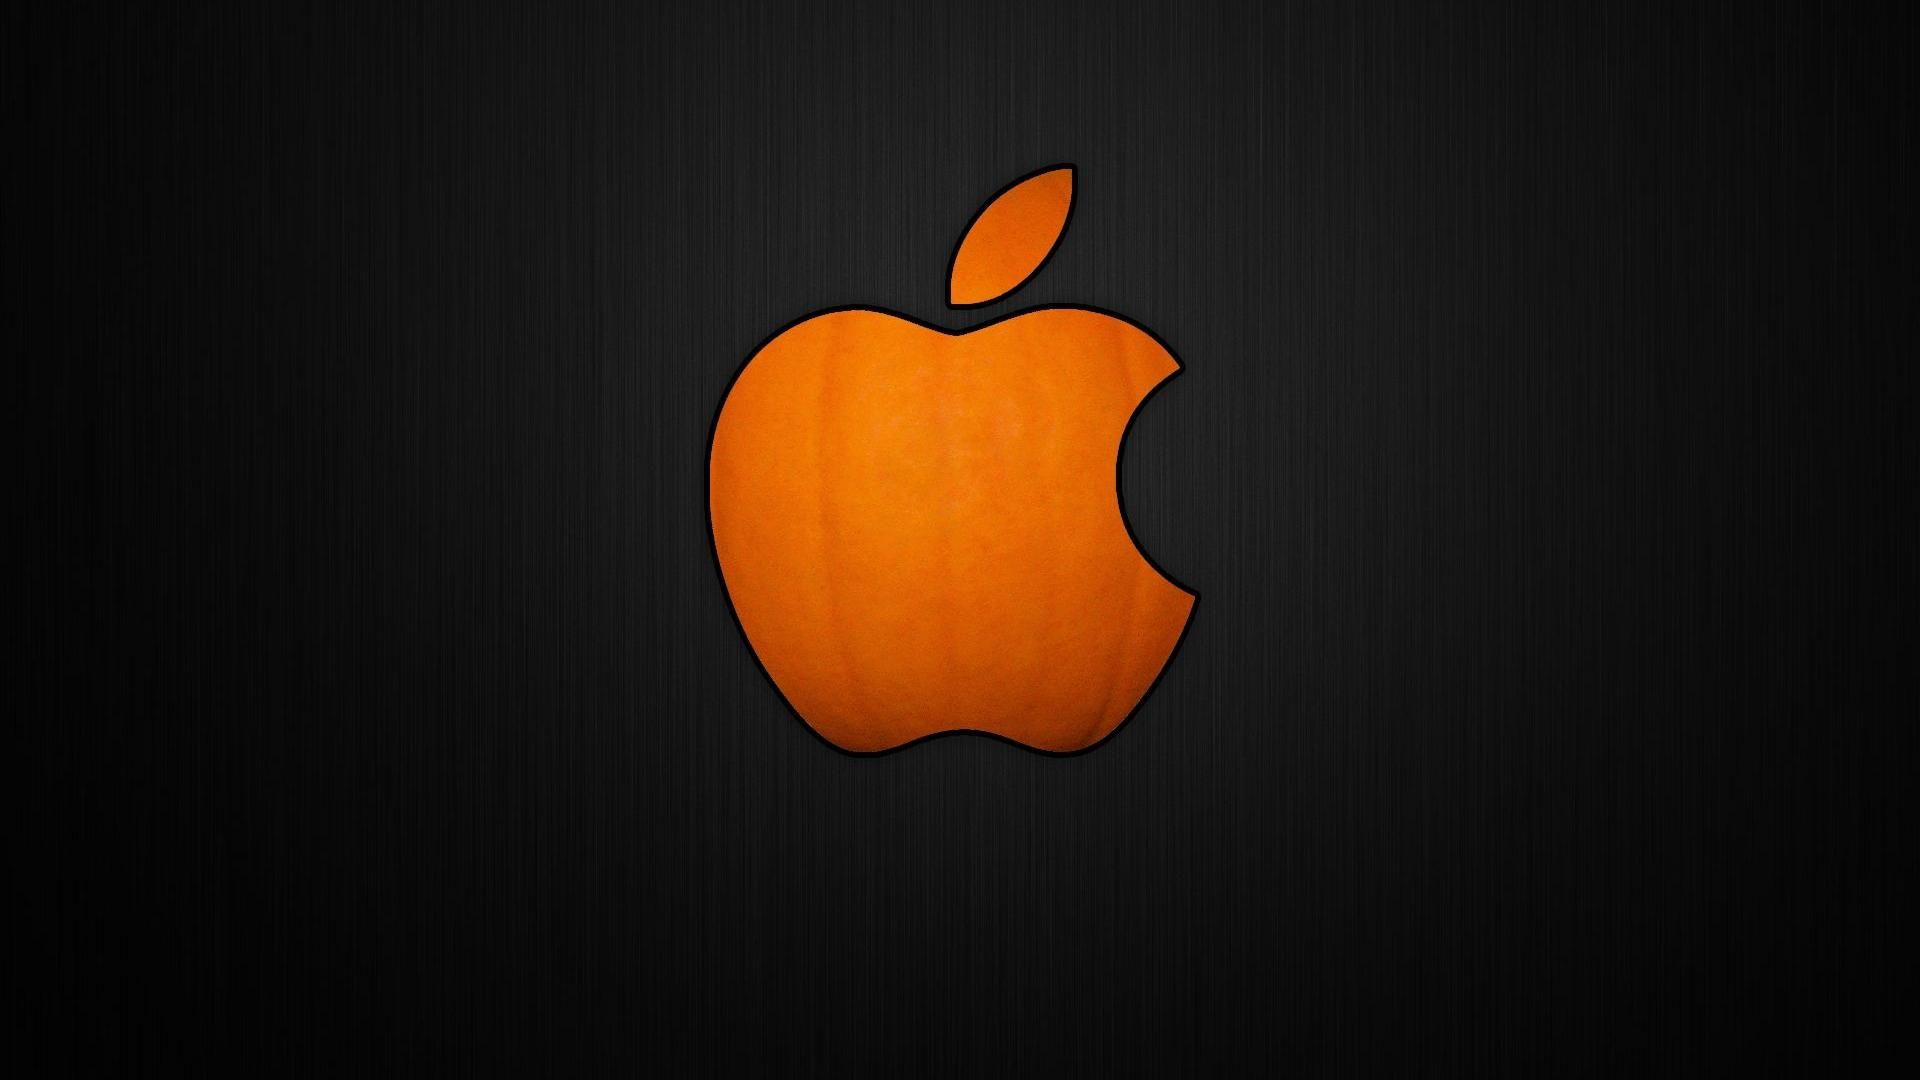 cool pictures apple logo hd wallpaper | ideas for the house